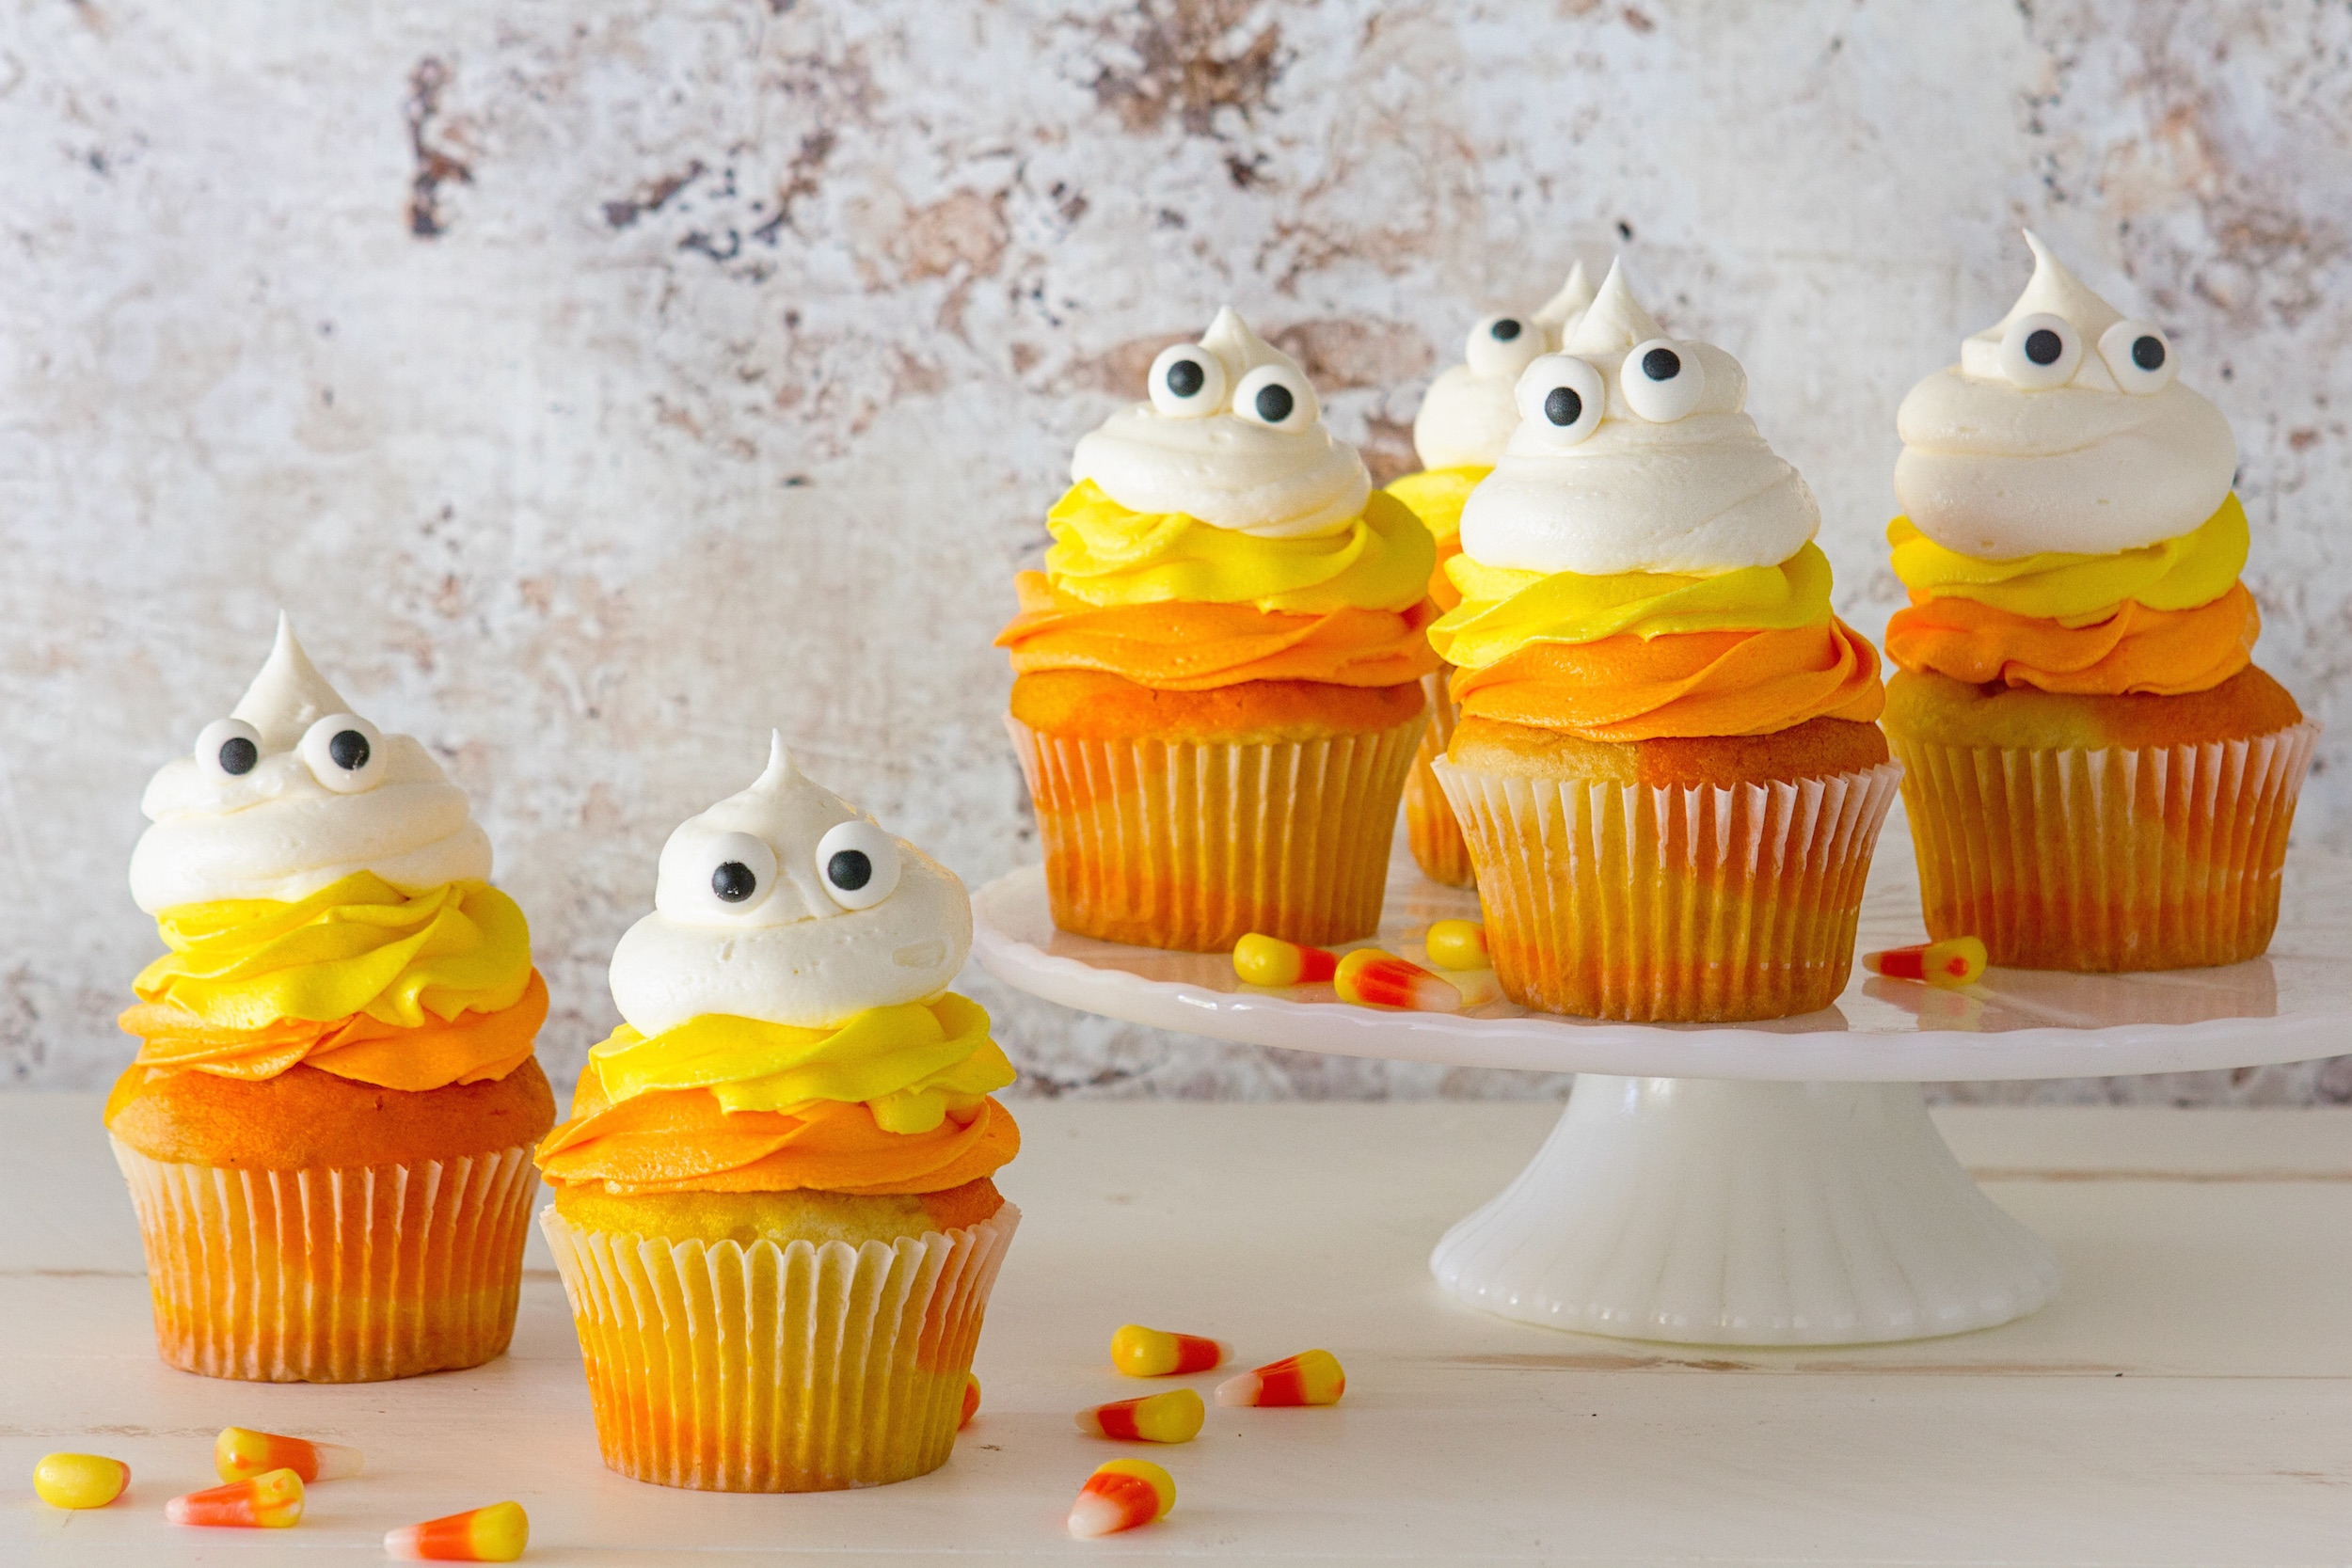 18 easy halloween cupcake ideas recipes decorating tips for halloween cupcakes - Halloween decorations for cupcakes ...